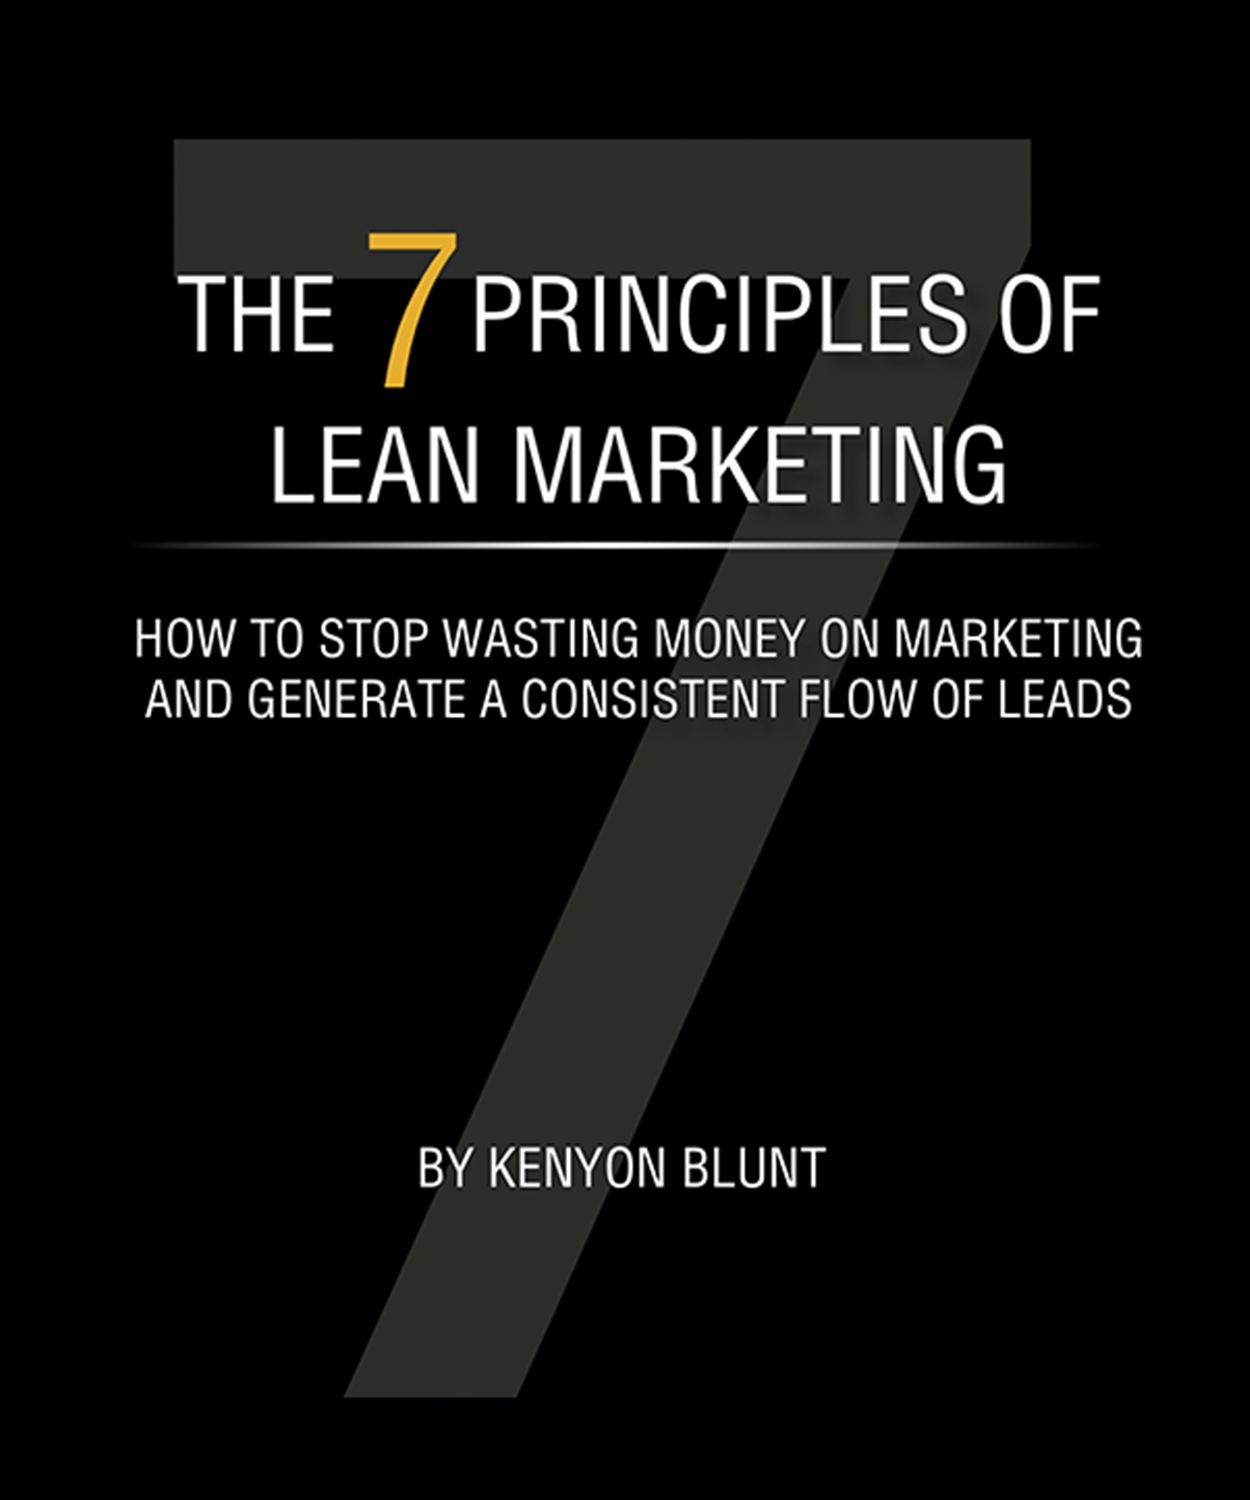 Book cover of The 7 Principles of Lean Marketing: How to Stop Wasting Money on Marketing and Generate a Consistent Flow of Leads by Kenyon Blunt.